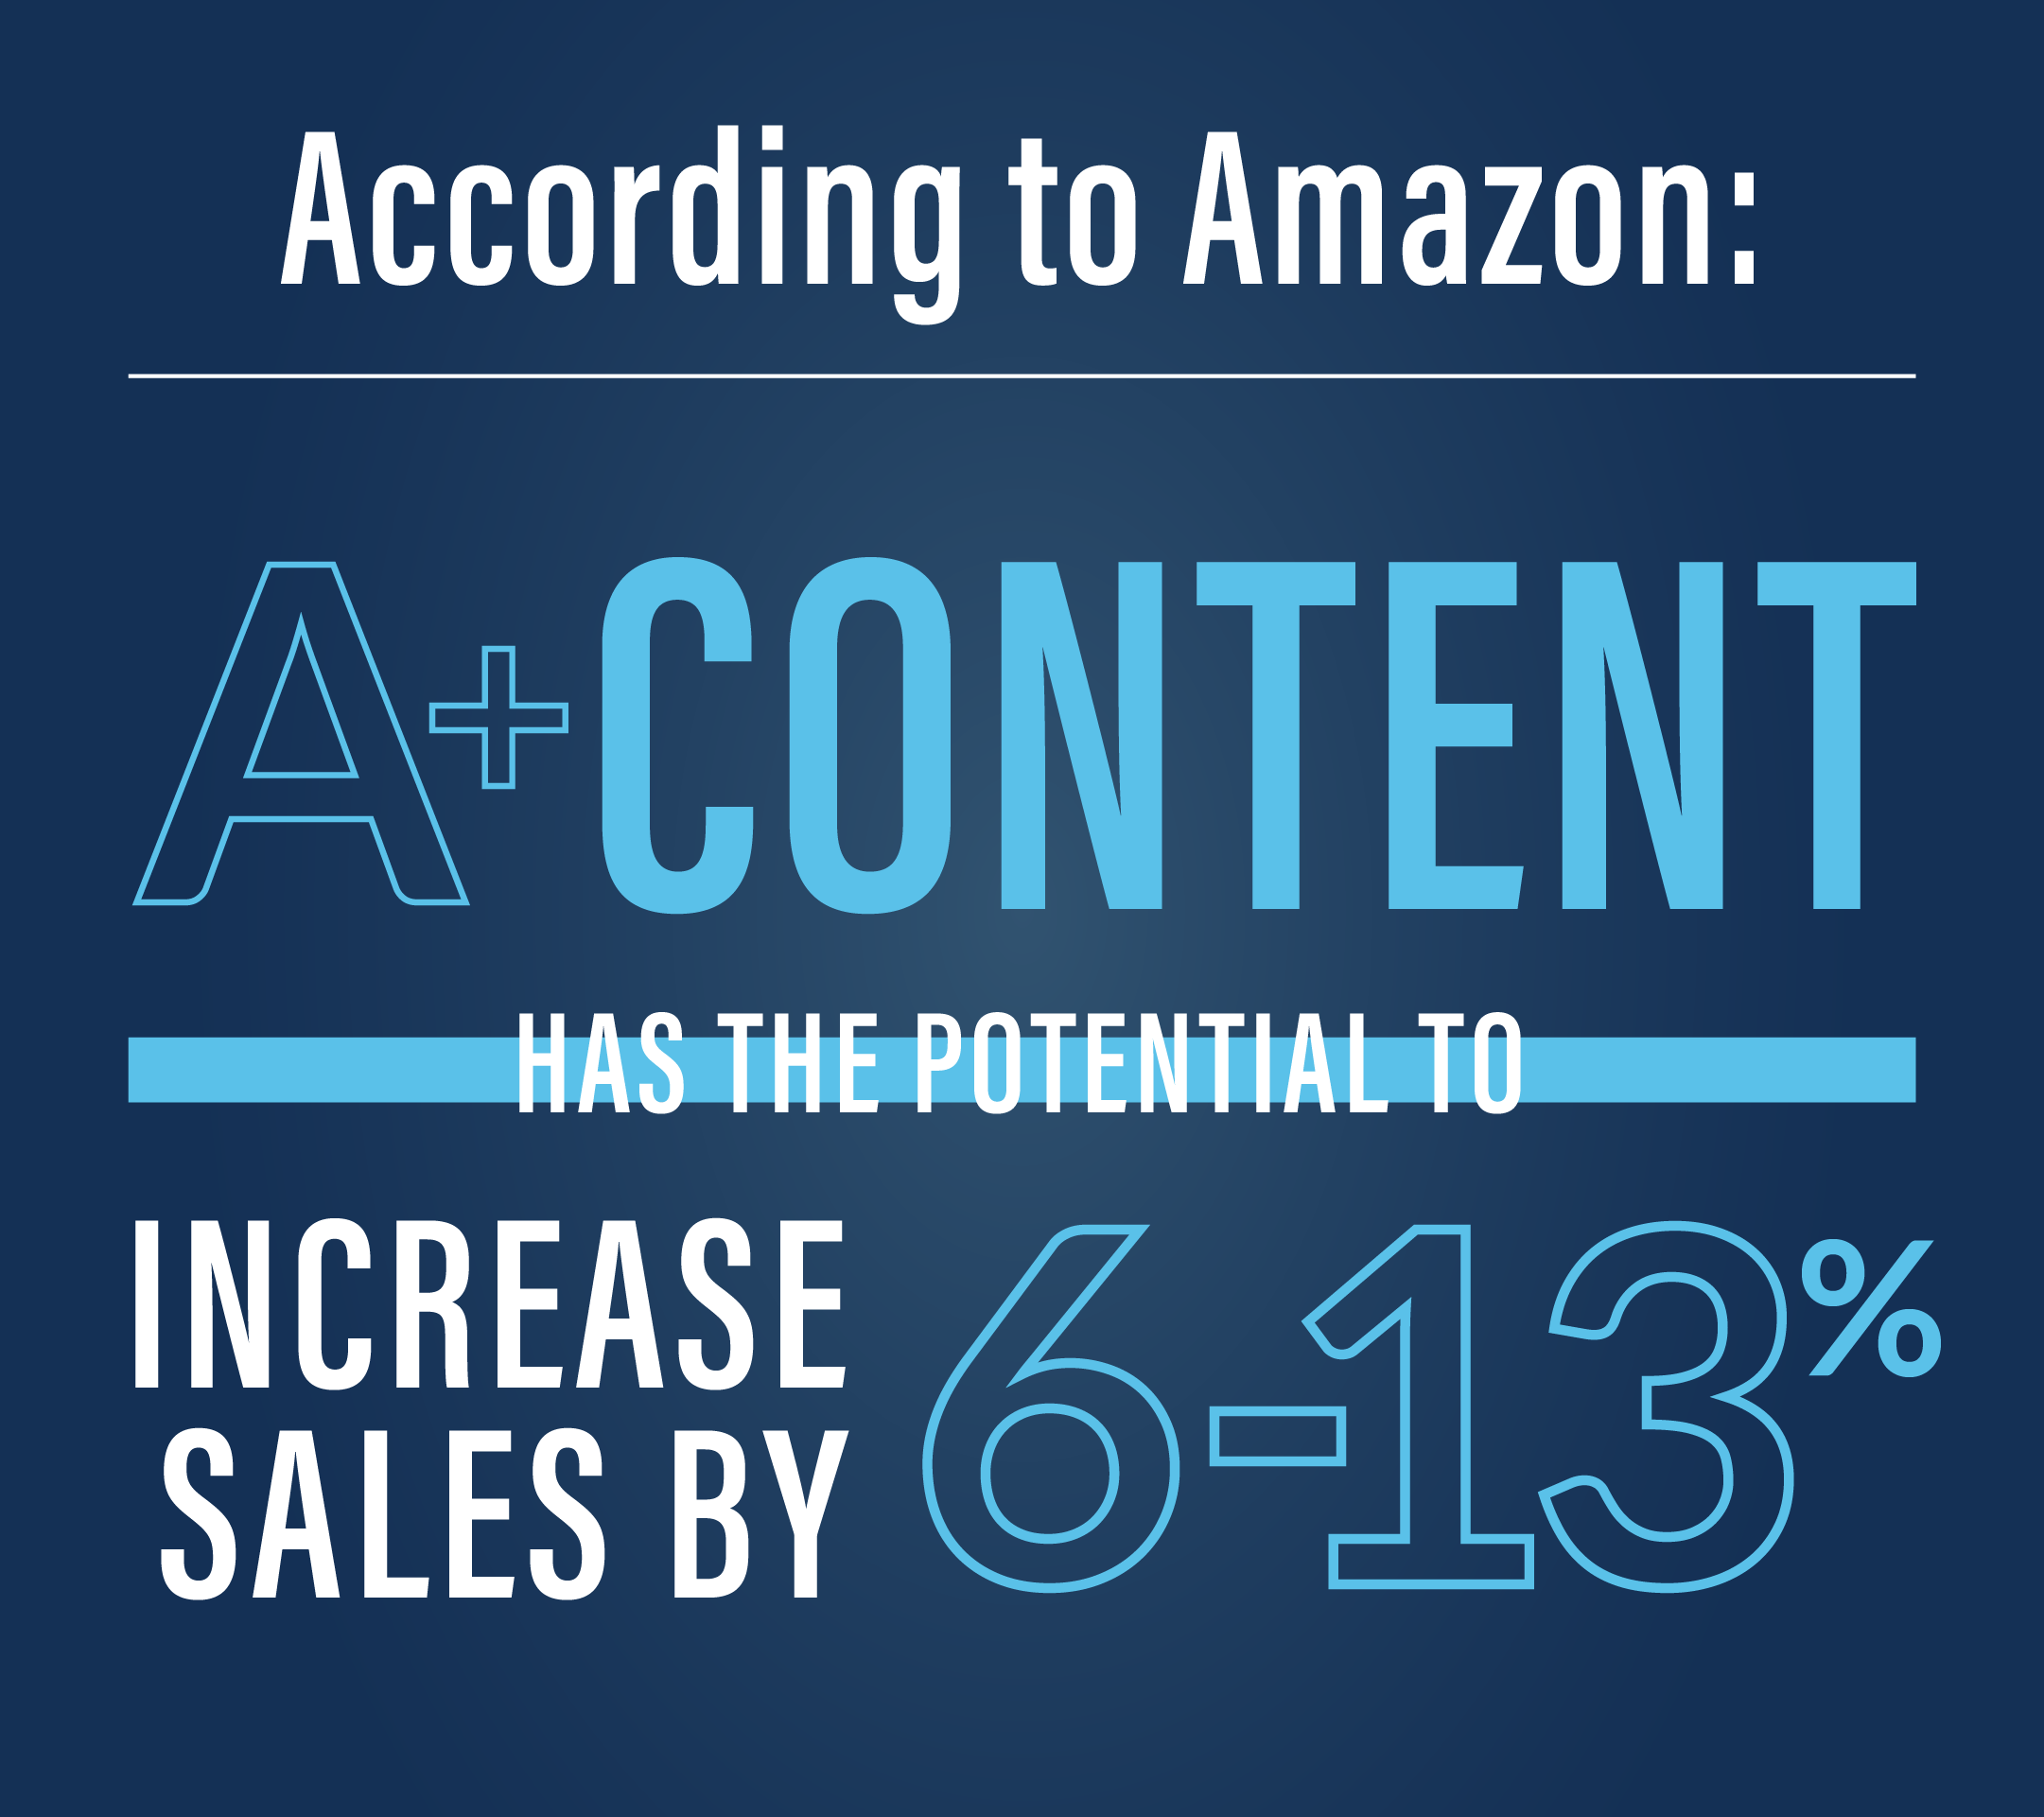 According to Amazon, A+ Content has the potential to increase your sales by 6-13%.